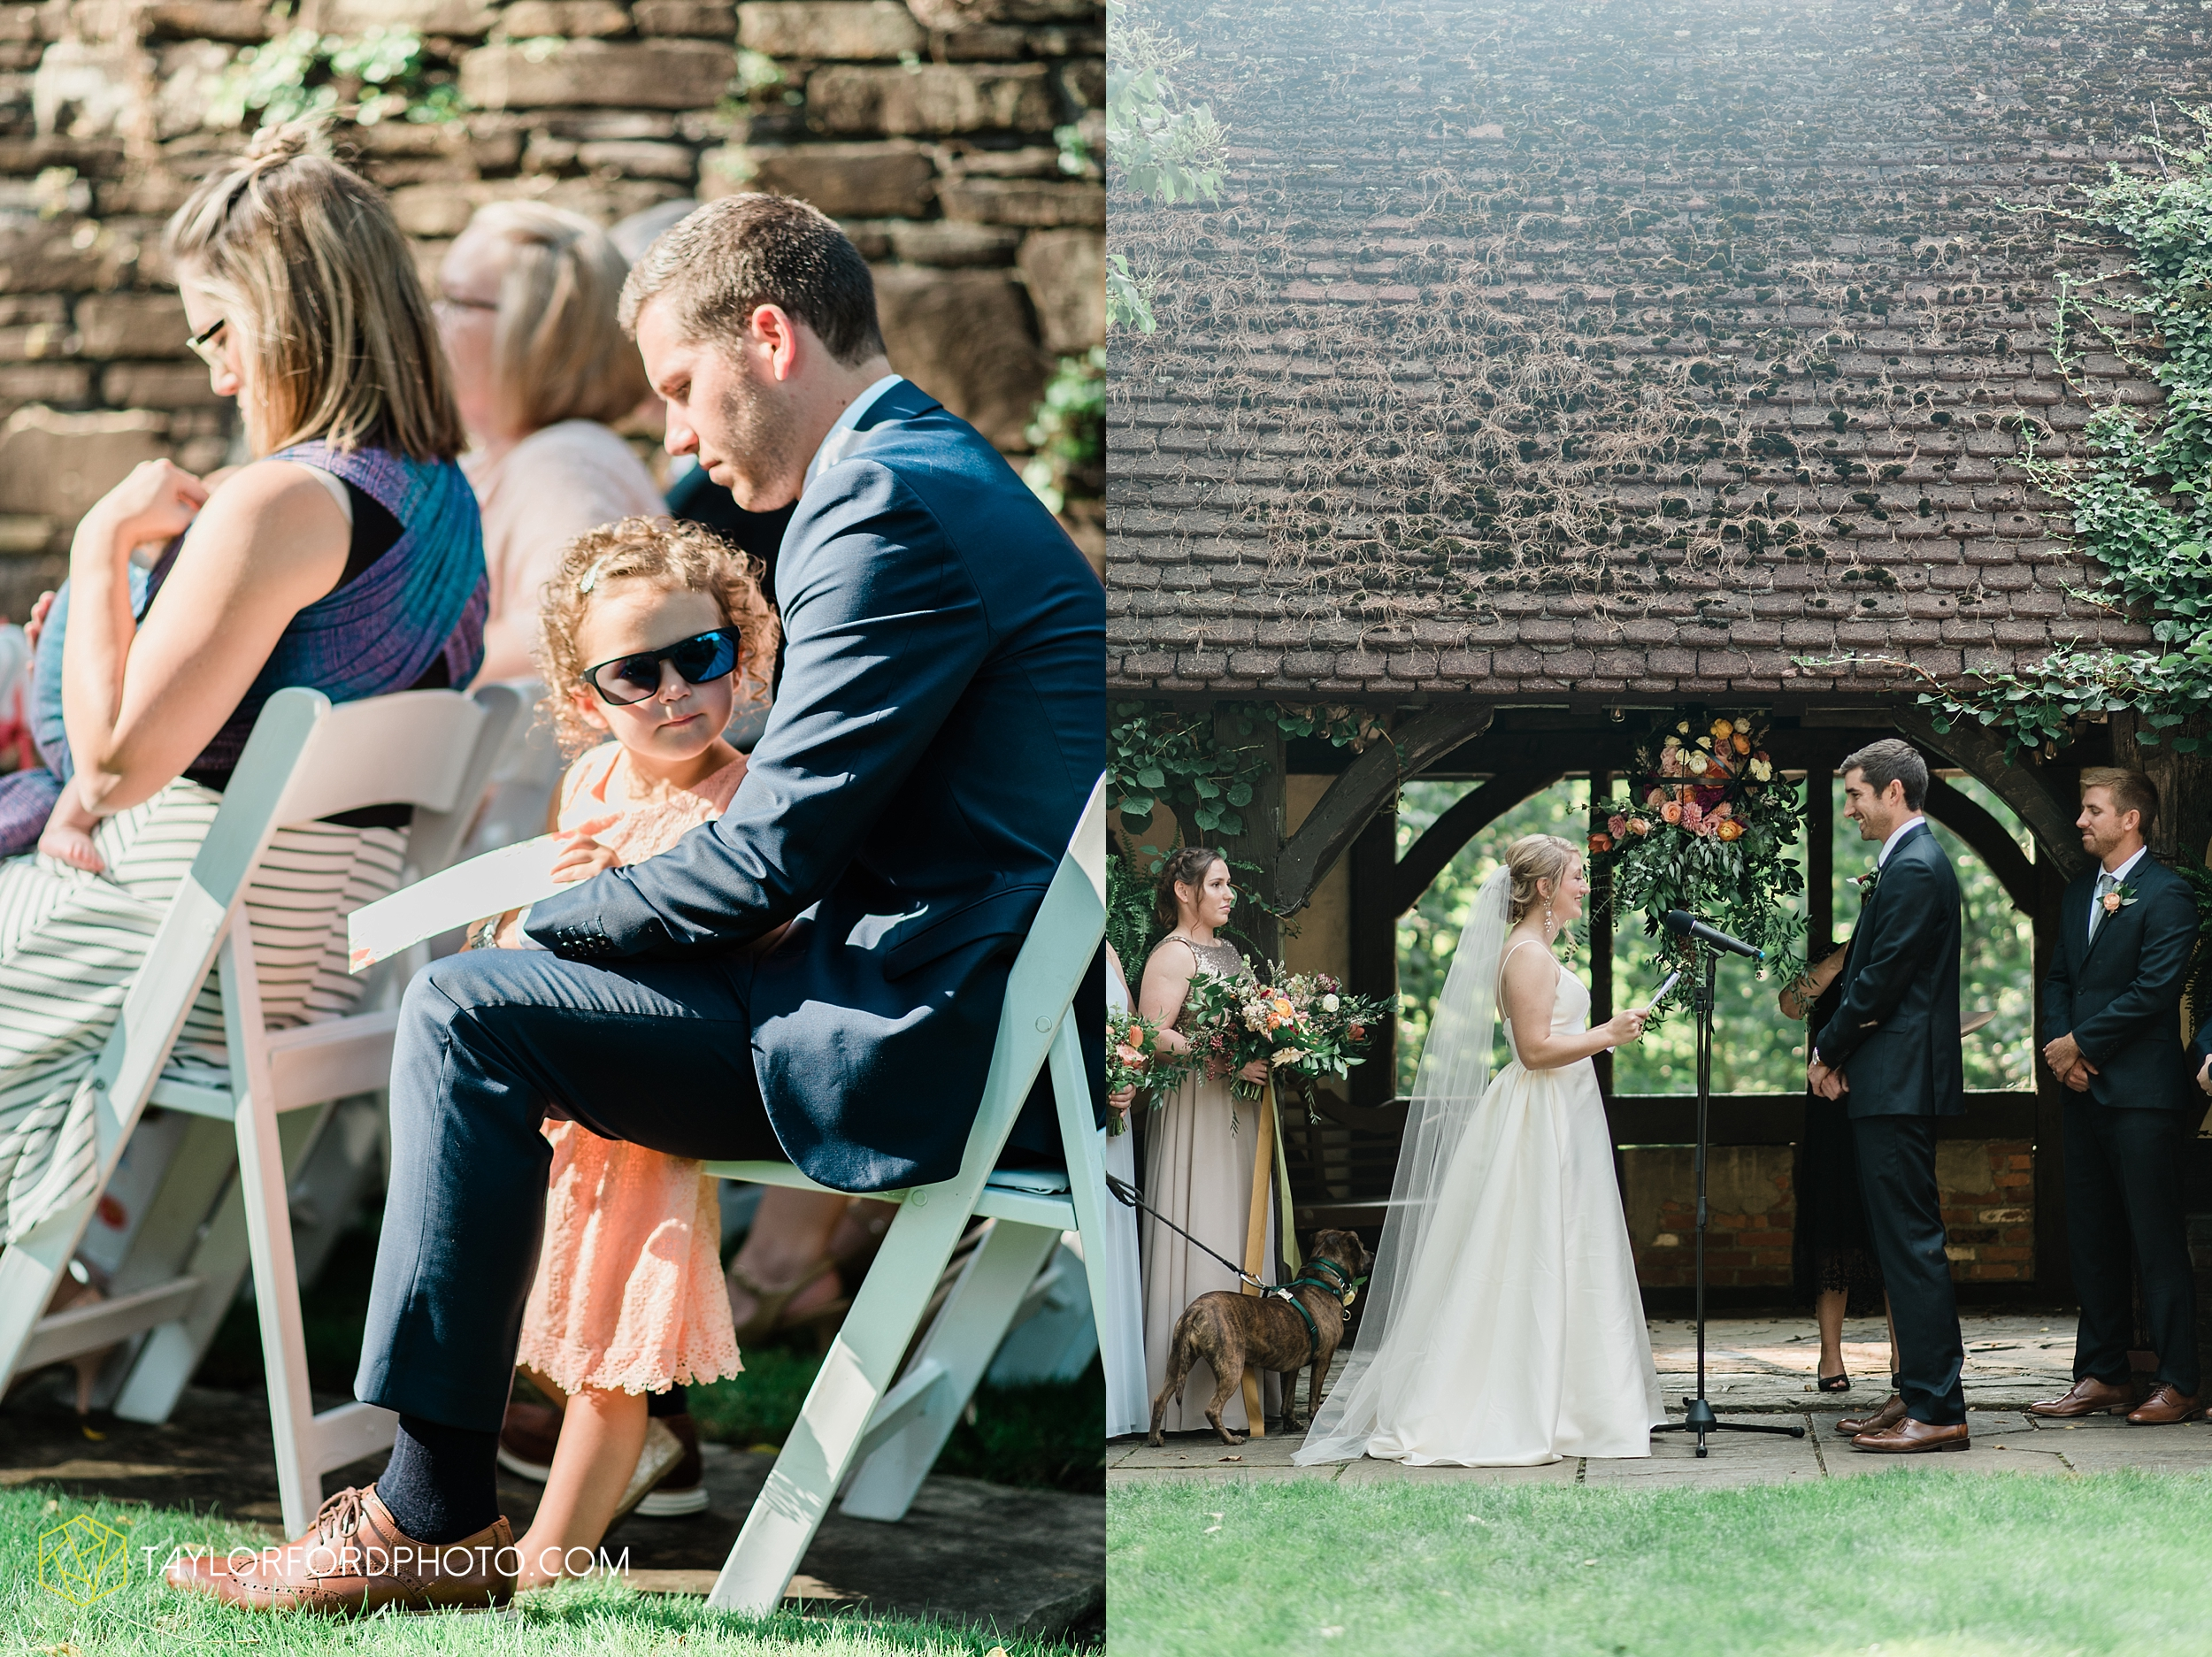 margot-may-evan-kohler-club-at-hillbrook-cleveland-chagrin-falls-outdoor-wedding-bhldn-gardenview-flowers-toledo-photographer-taylor-ford-photographer_9582.jpg